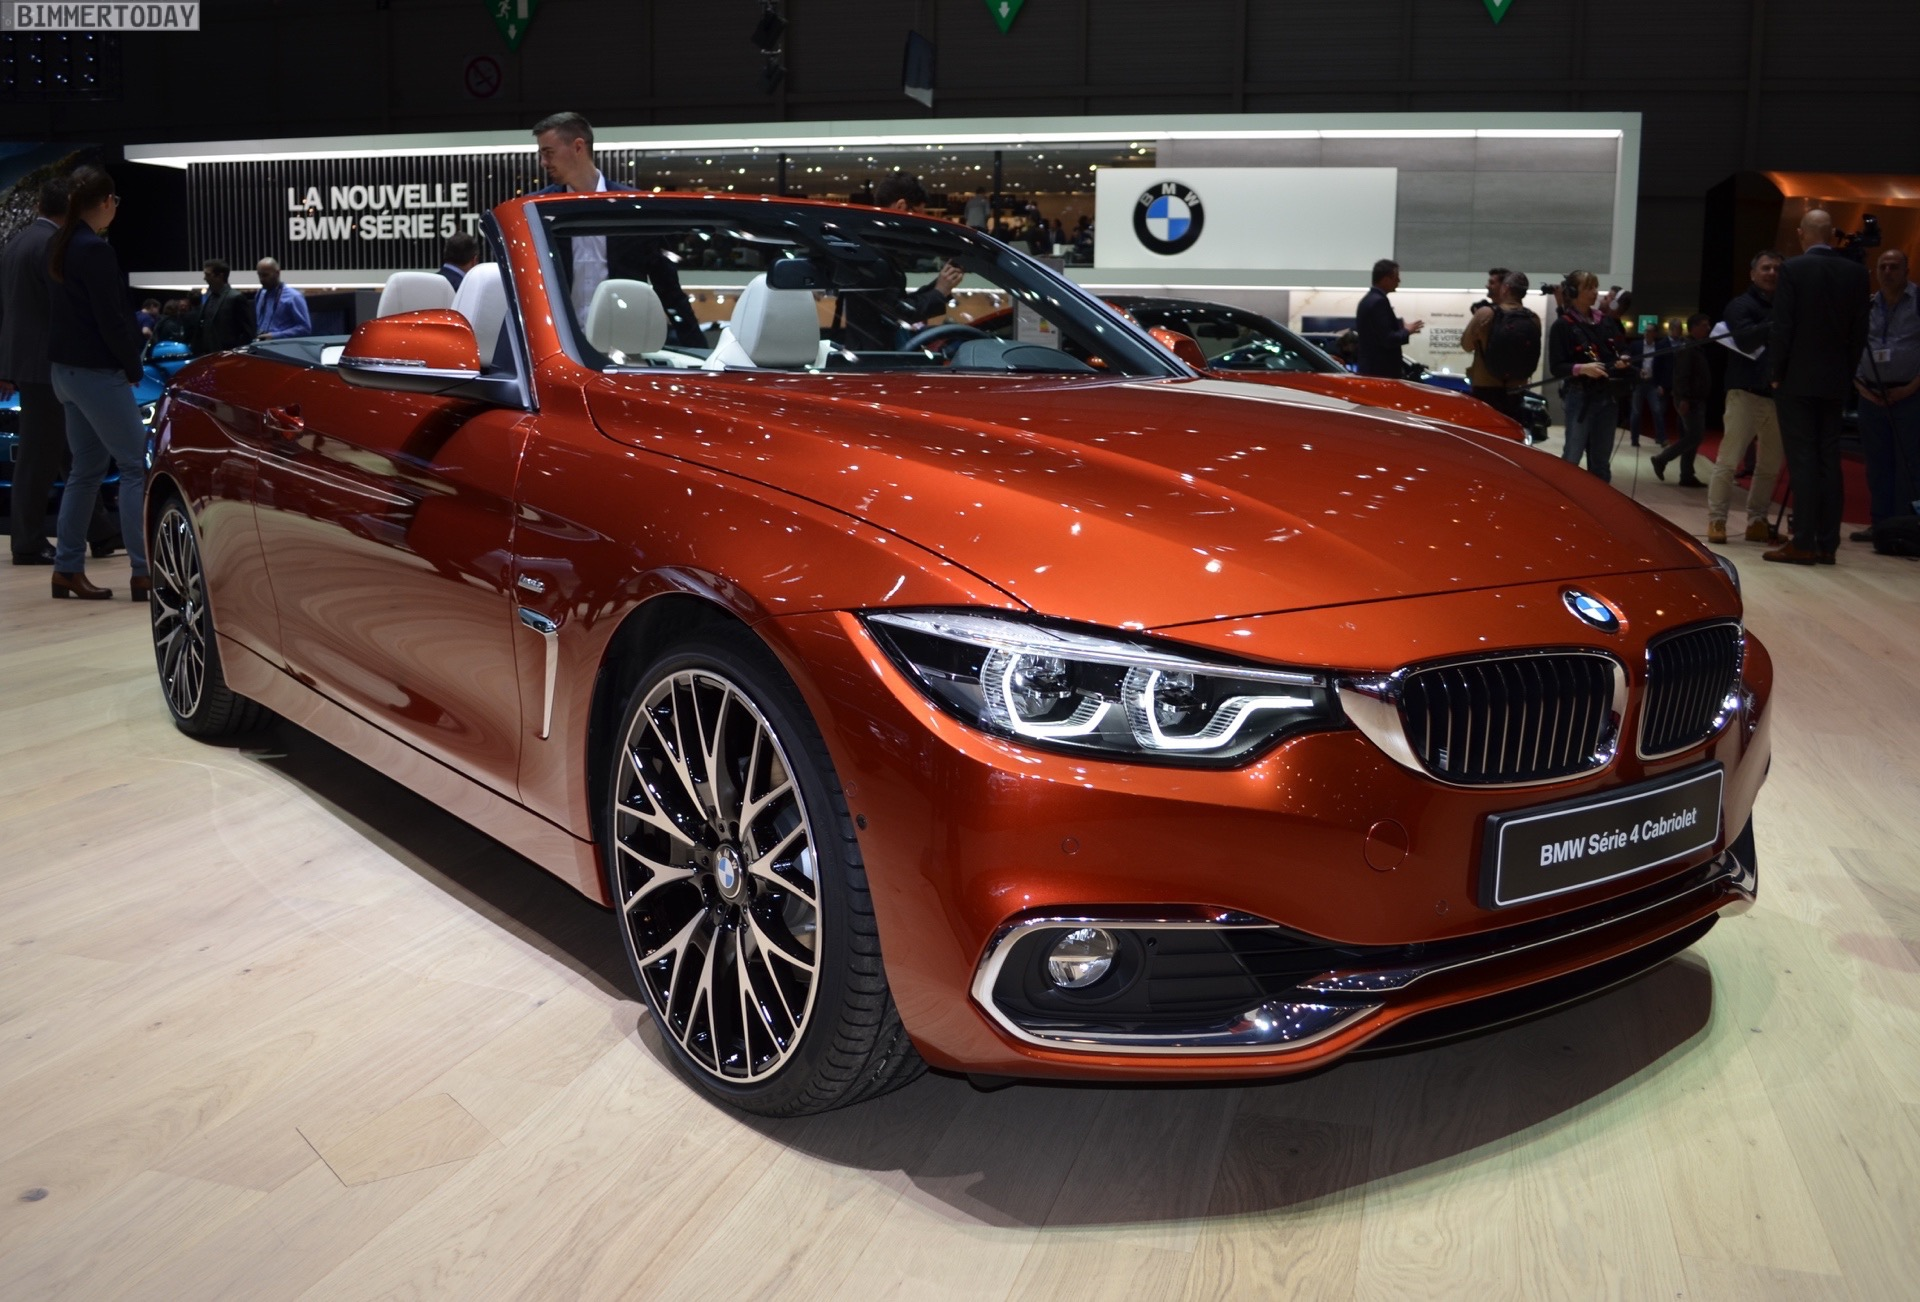 Genf 2017 Bmw 4er Cabrio Facelift Strahlt In Sunset Orange